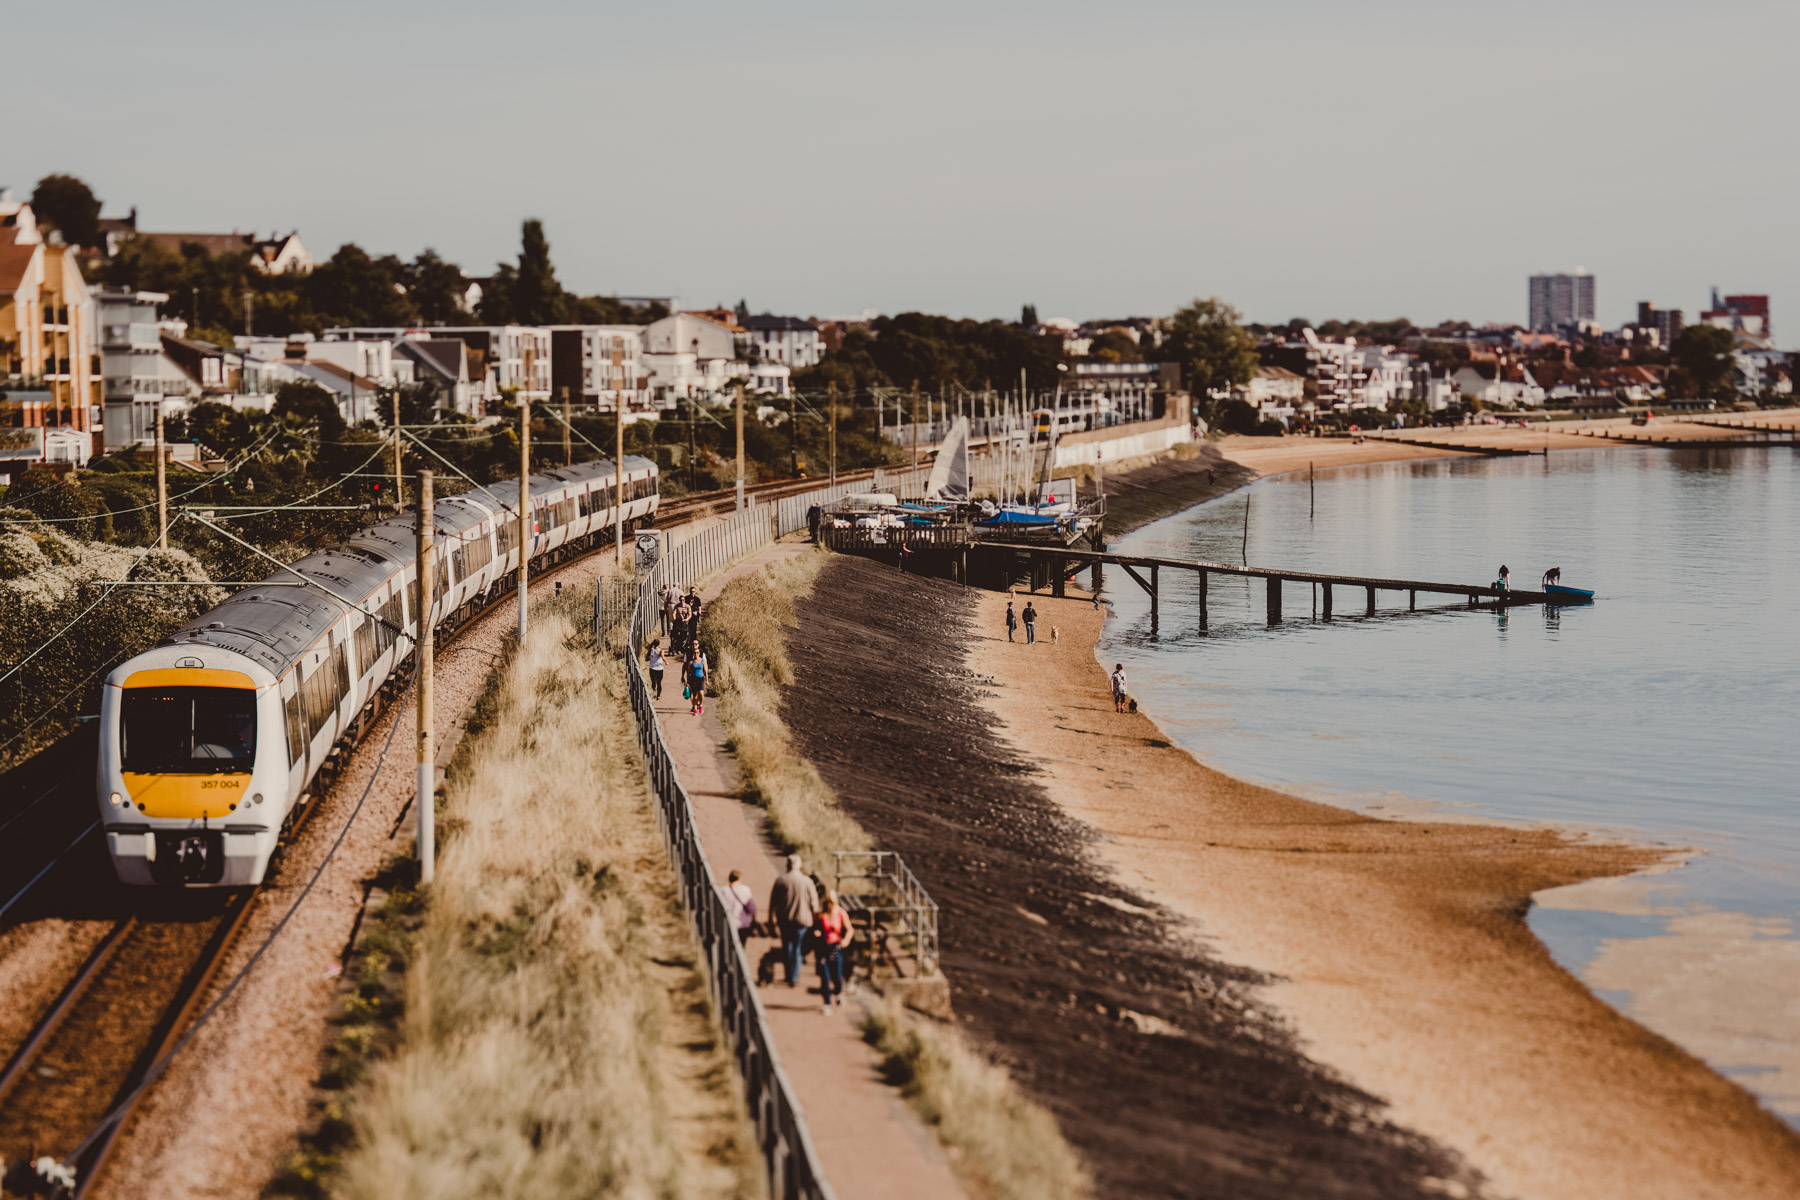 Be proud to live and work in Leigh-on-Sea, with beautiful Estuary views and direct train line into London Fenchurch Street for those client meetings.